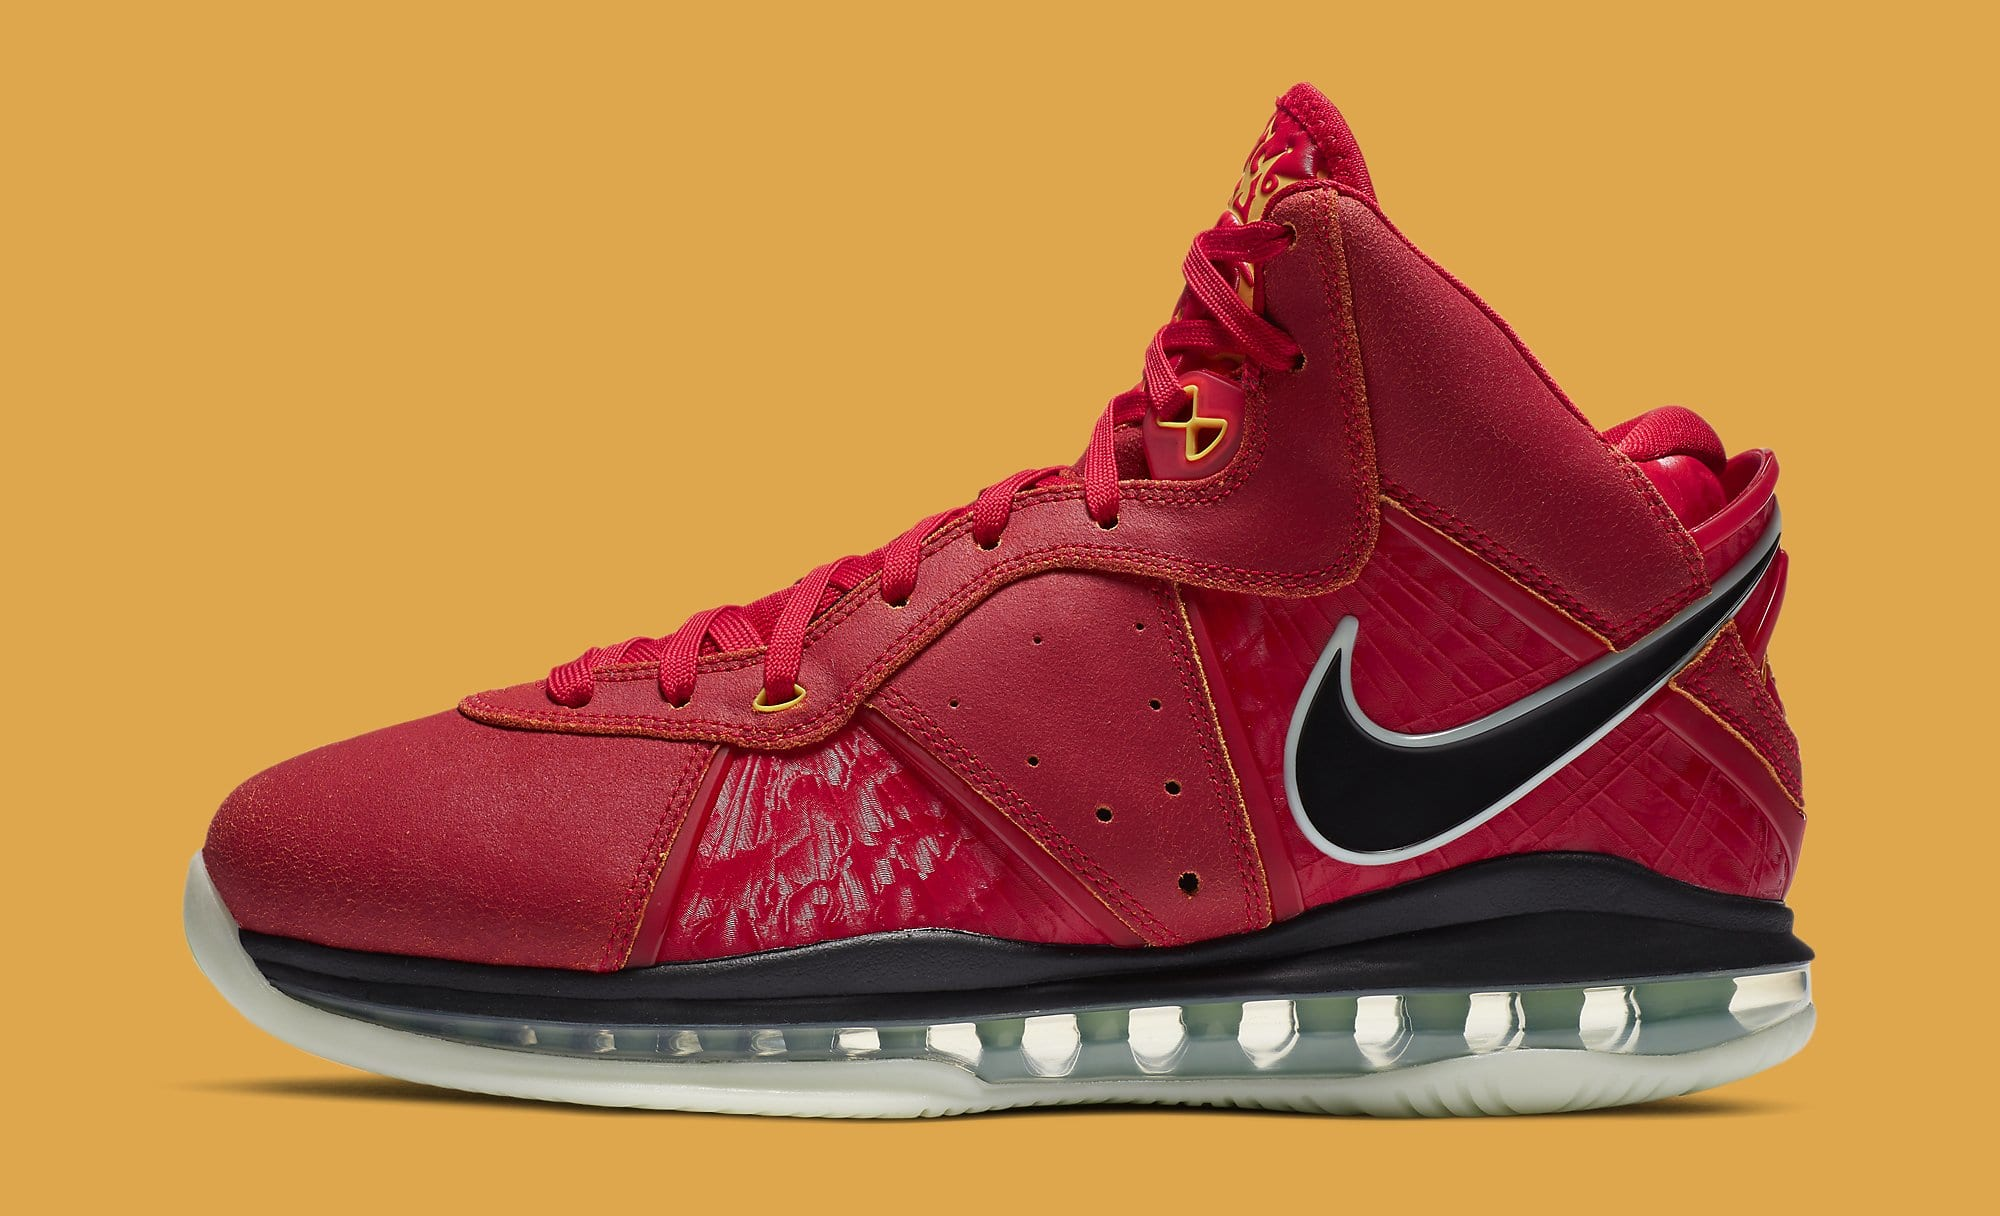 Nike LeBron 8 QS 'Gym Red' CT5330-600 Lateral